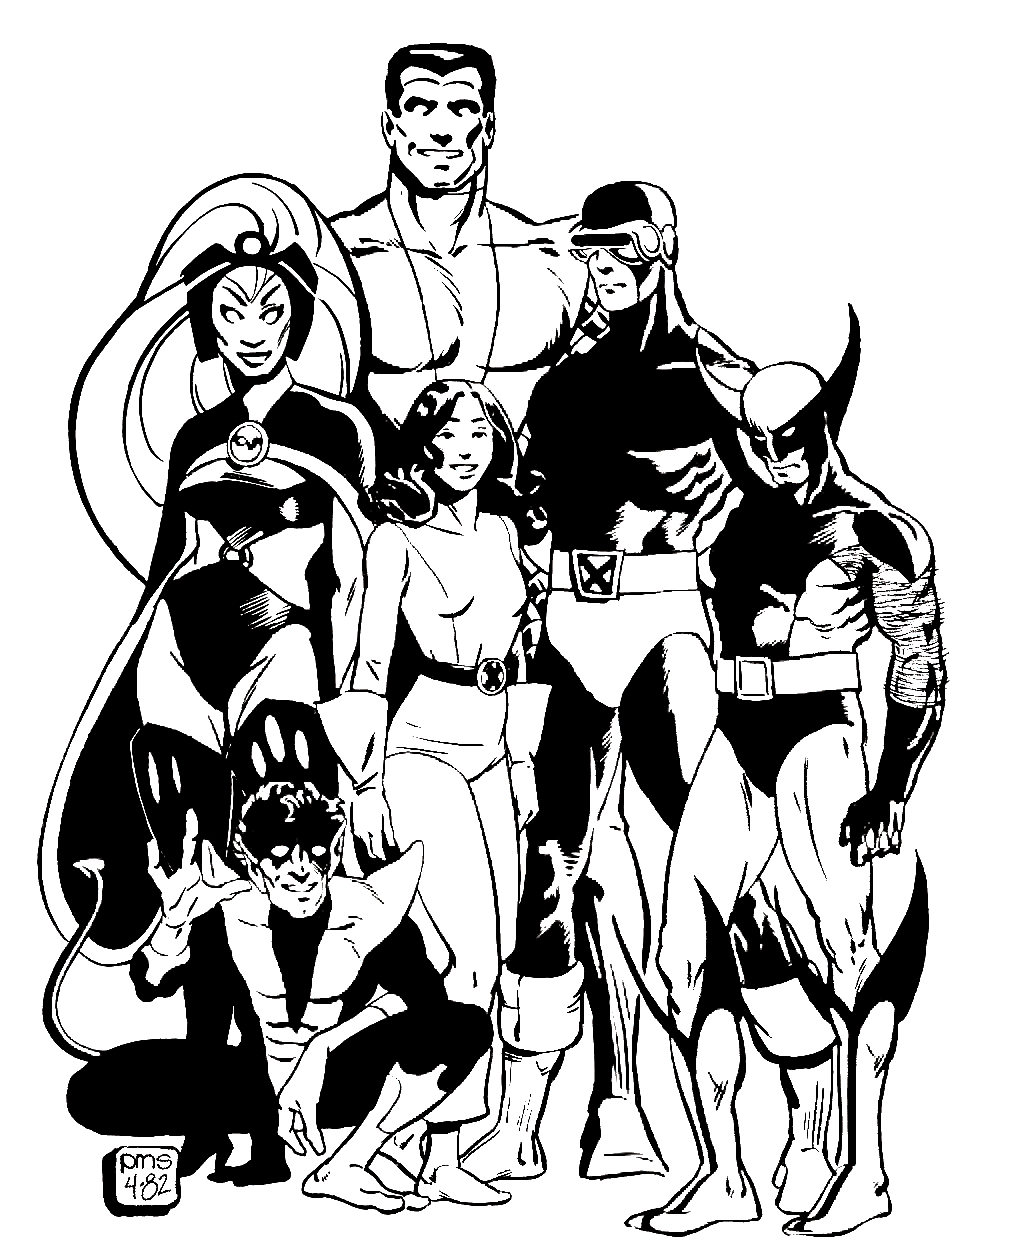 Coloring pages wolverine x men - The Dork Review Xmen Coloring Page For The Holidays